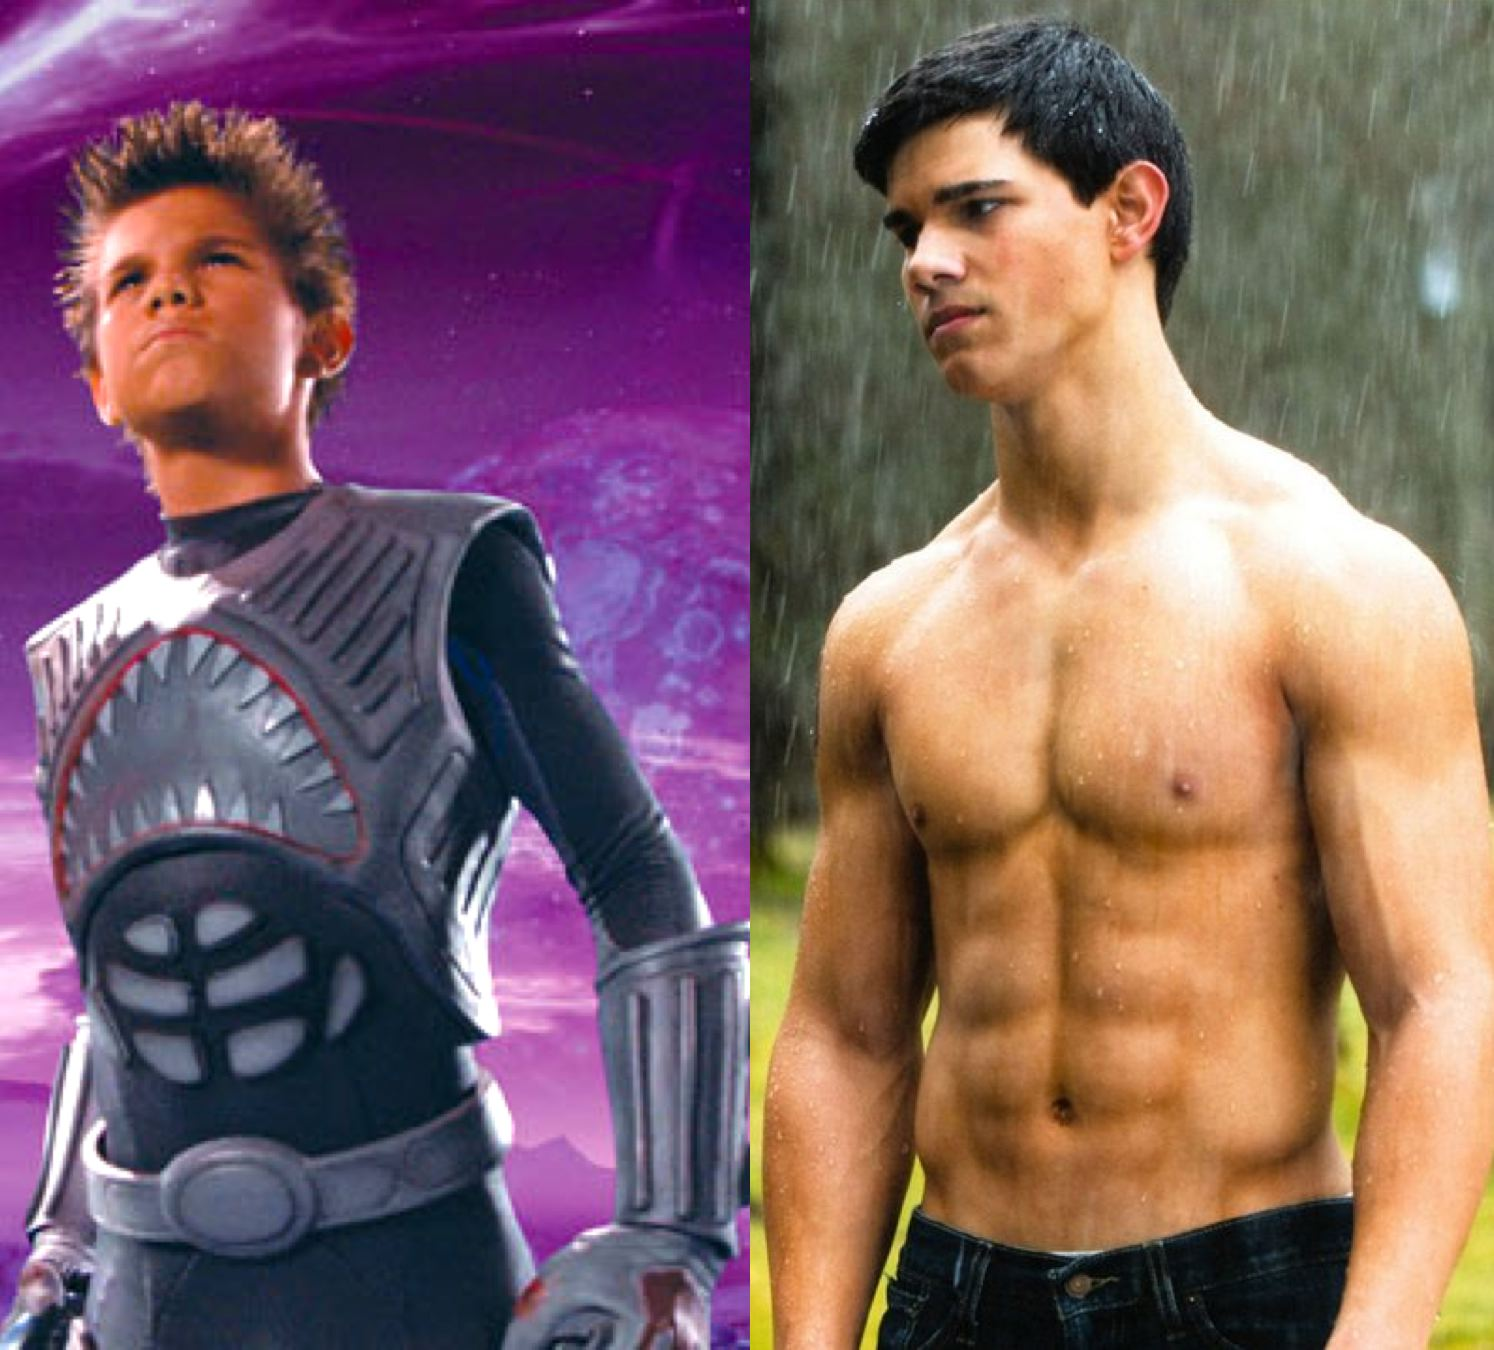 Clearly taylor lautner abs doubtful